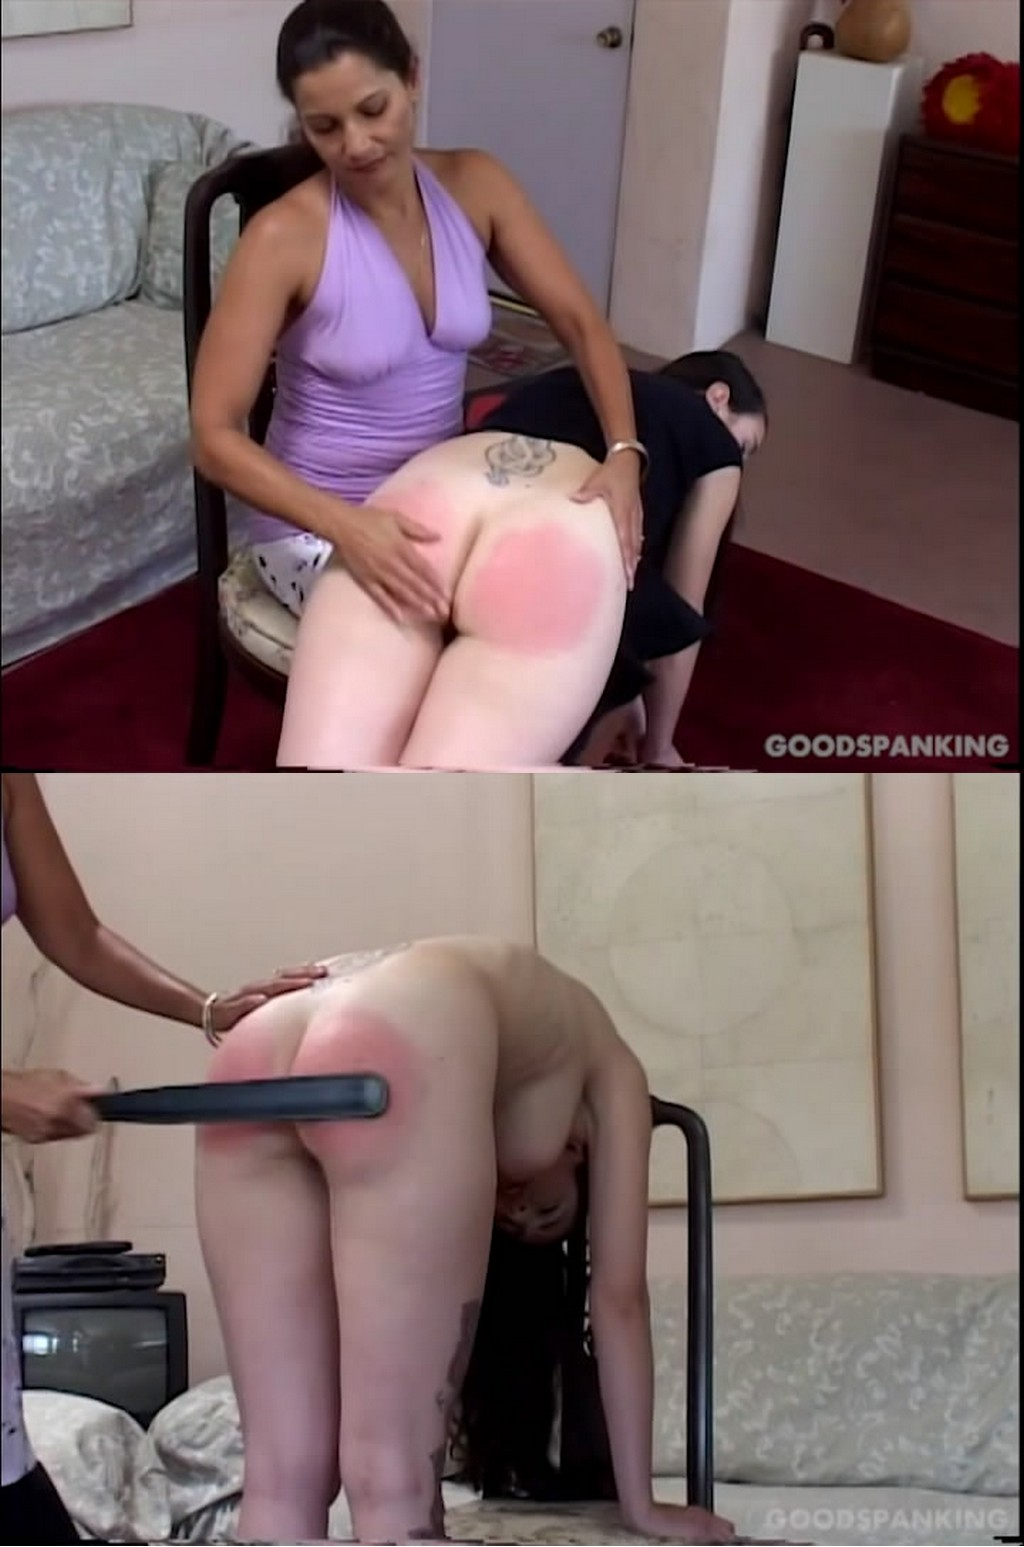 Good Spanking – MP4/SD – Chelsea Pfeiffer, Natalie Minx – Chelsea Spanks: Natalie (Release date: OCT. 13, 2020)